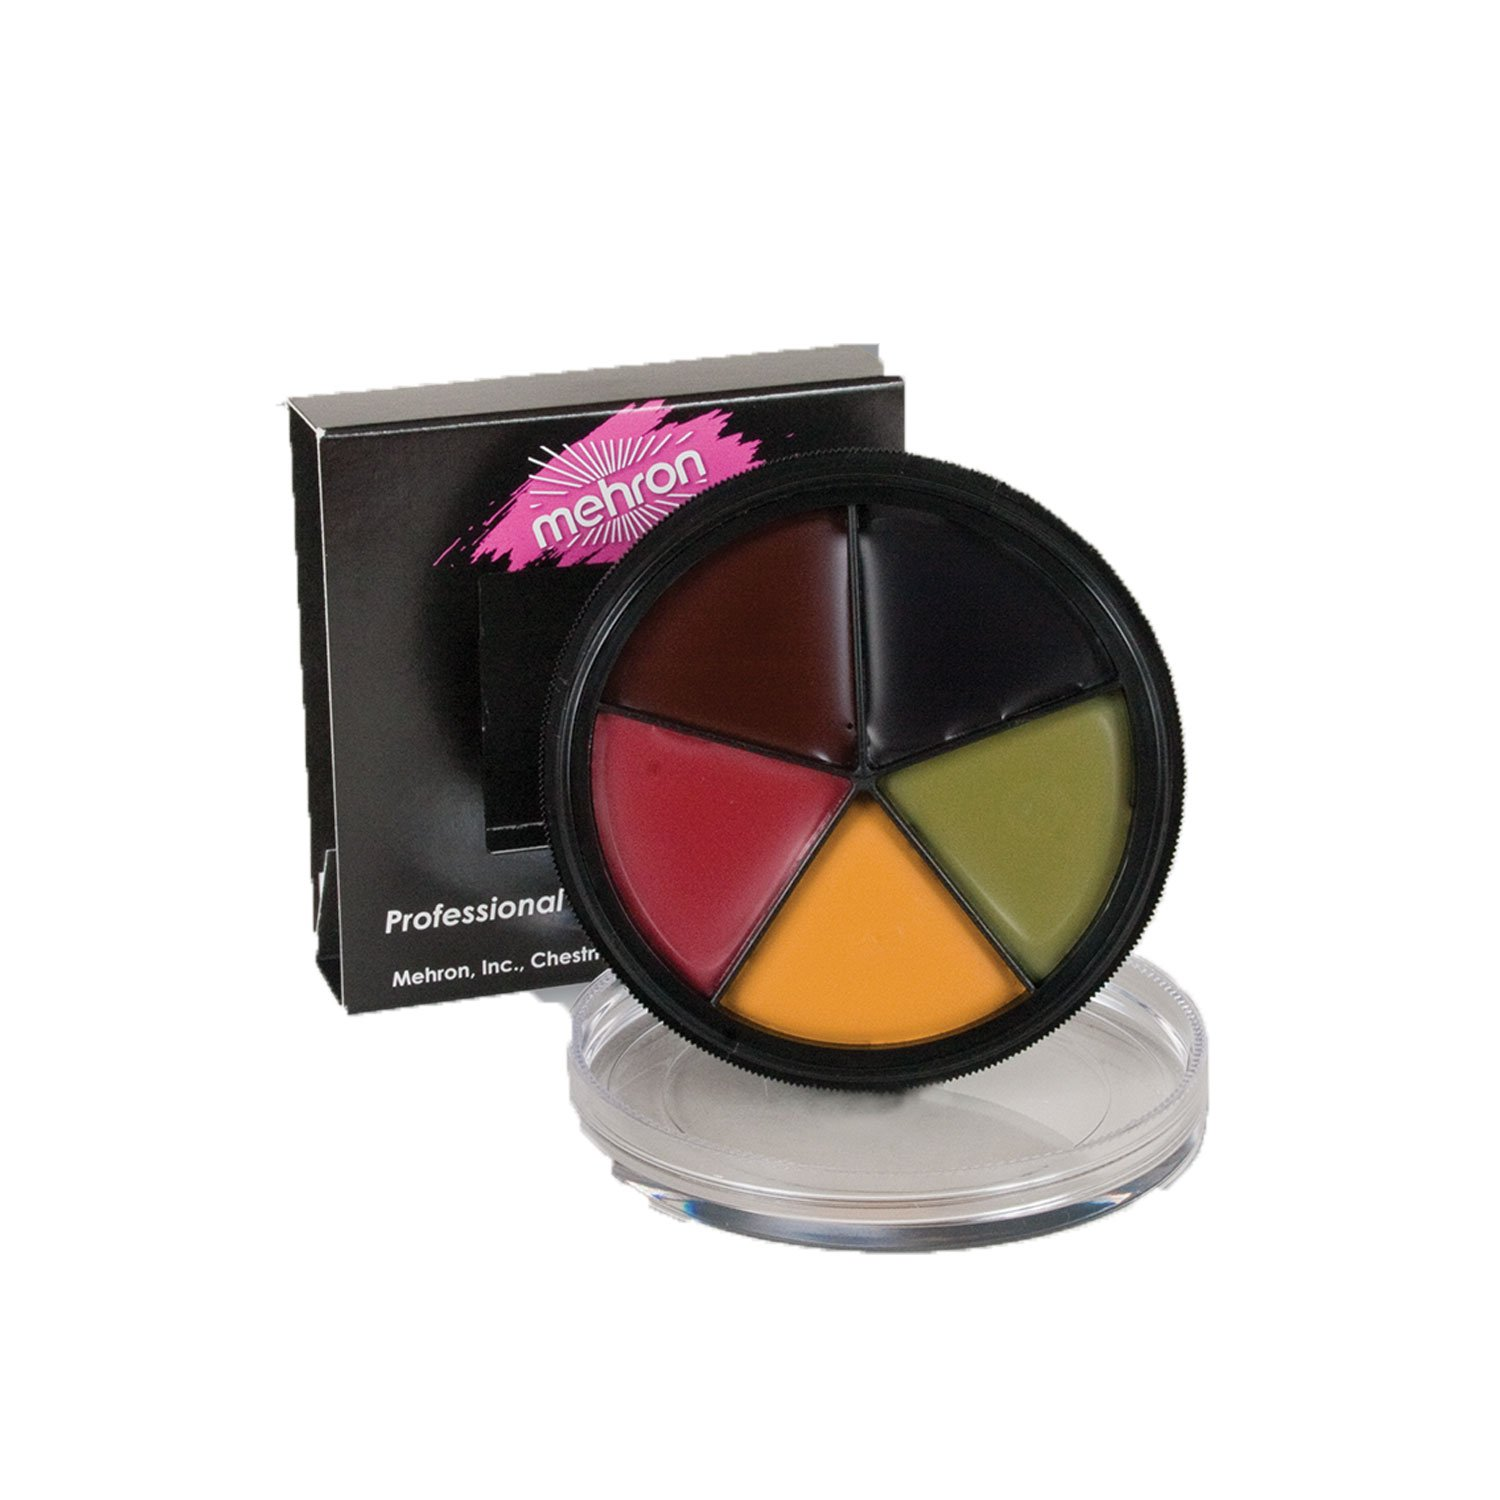 Mehron ProColoRing Bruise Wheel Professional Makeup, 1 Ounce (5-Color)